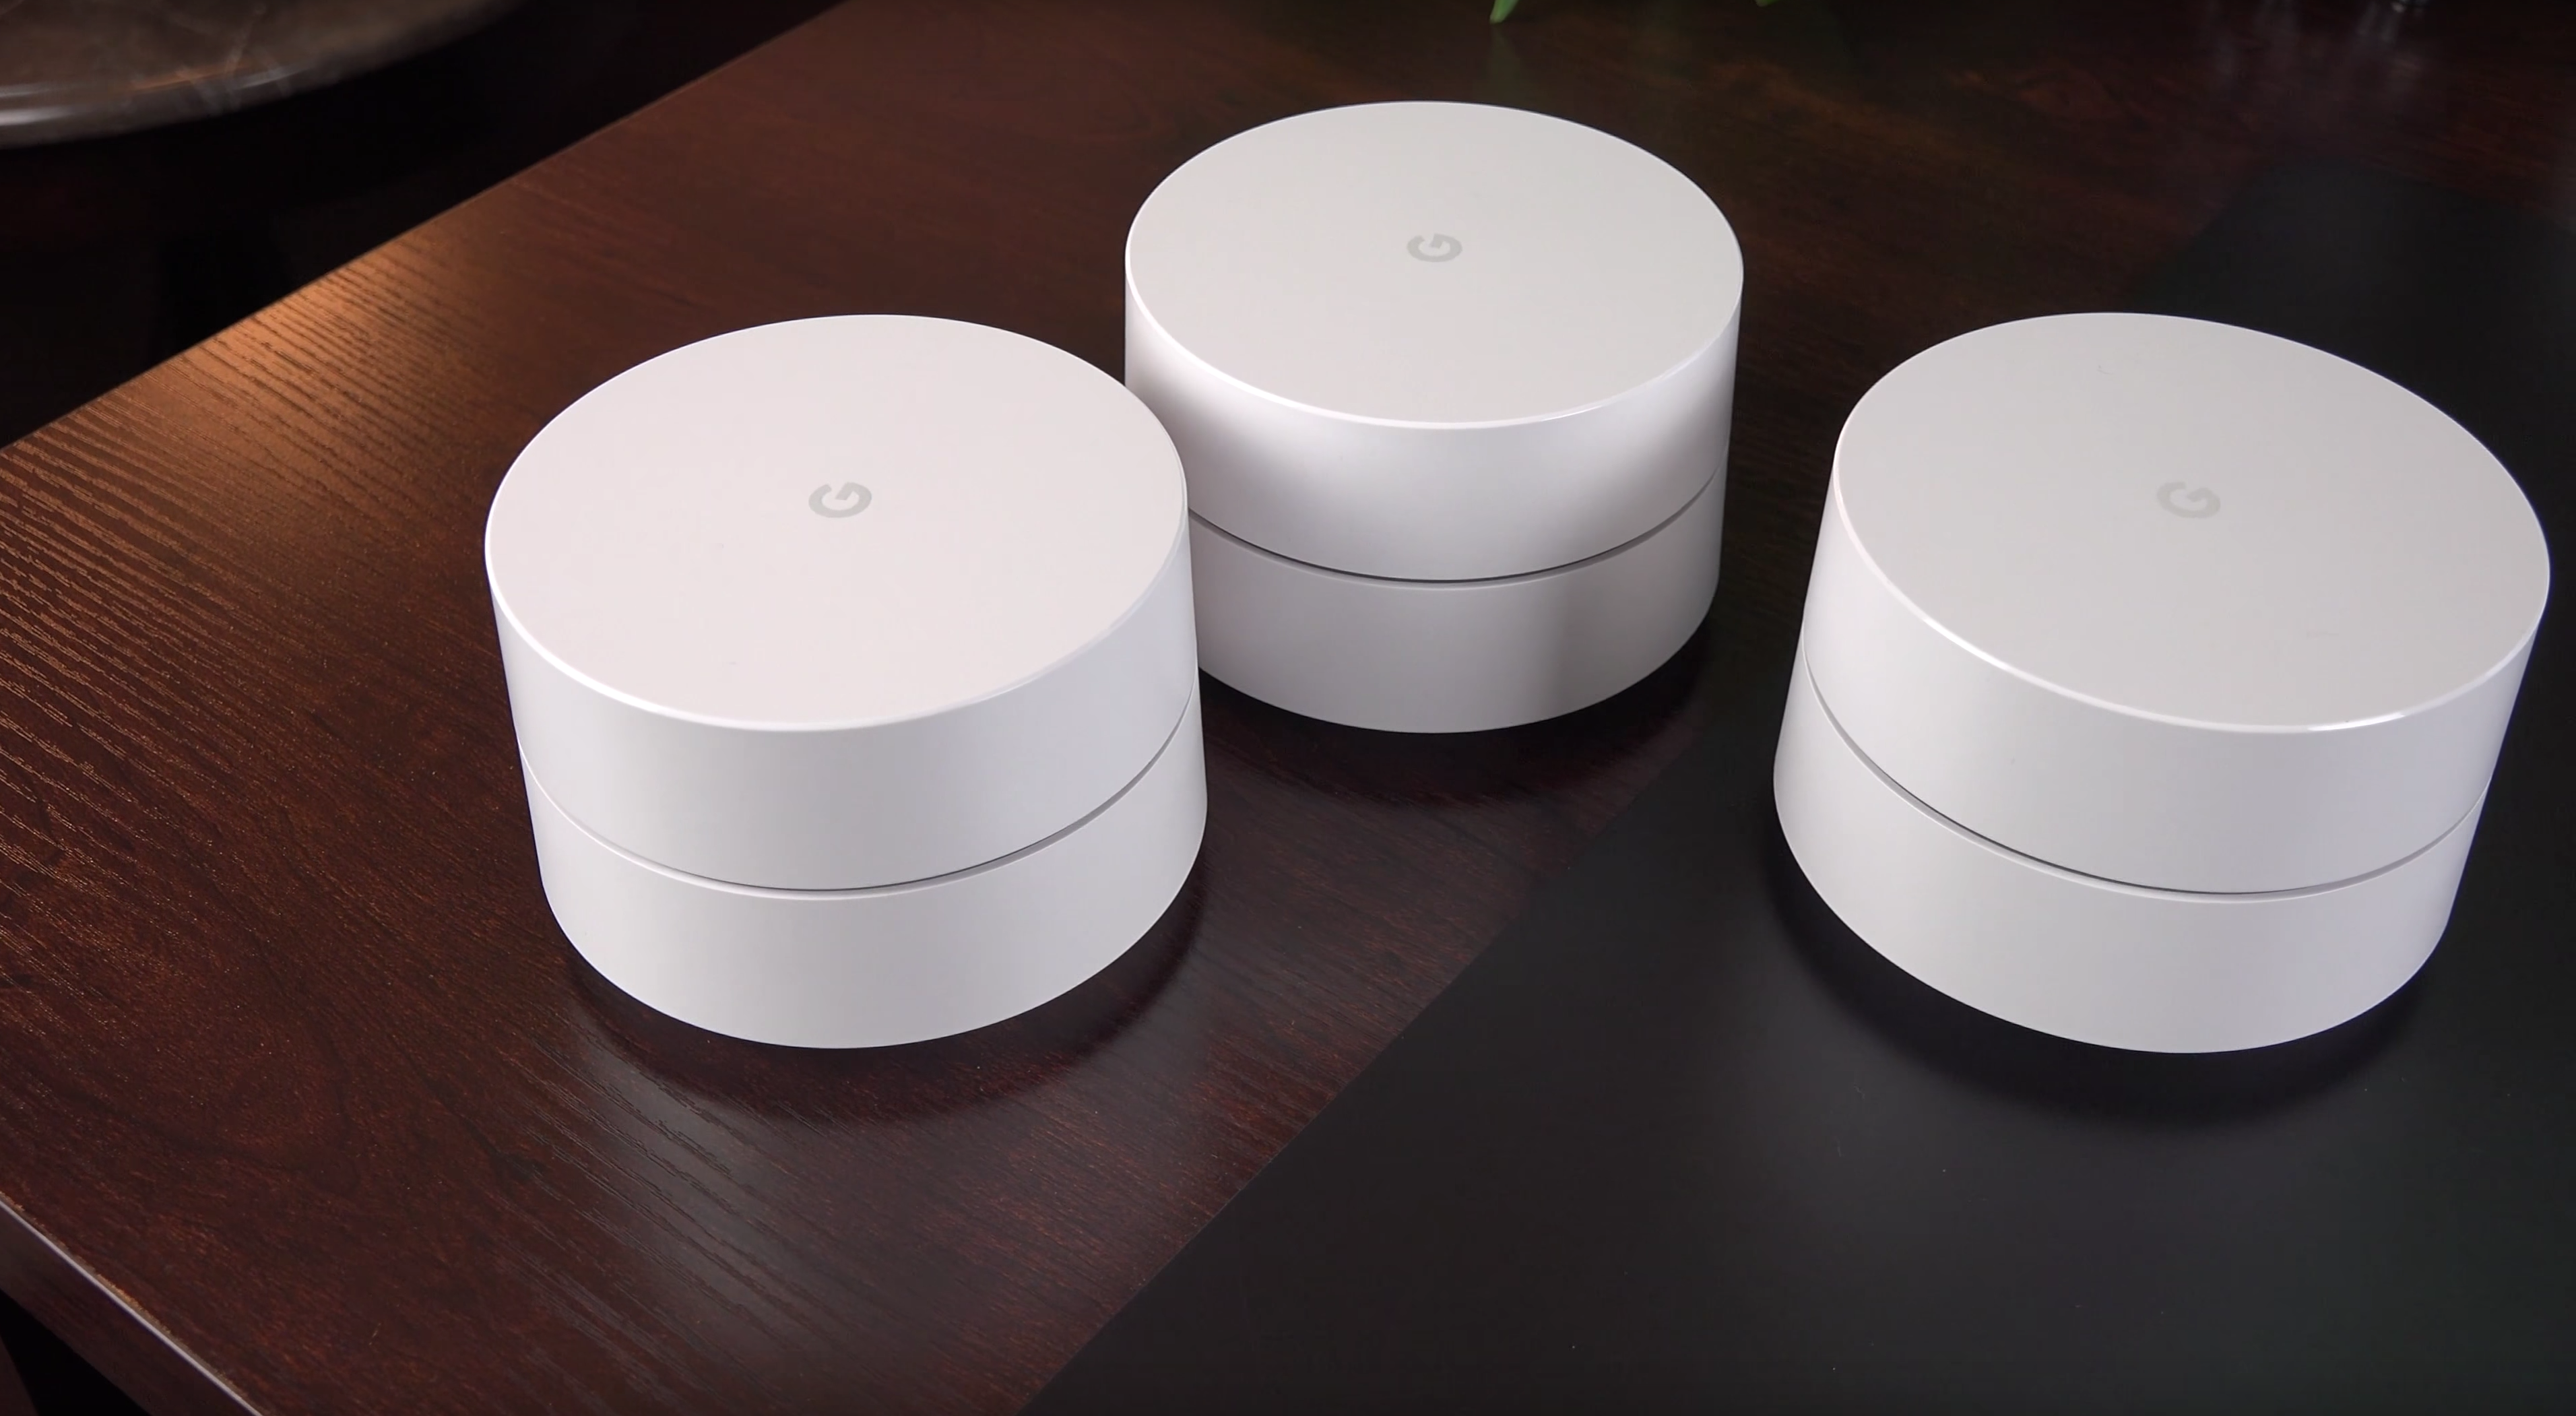 google wifi top 5 review